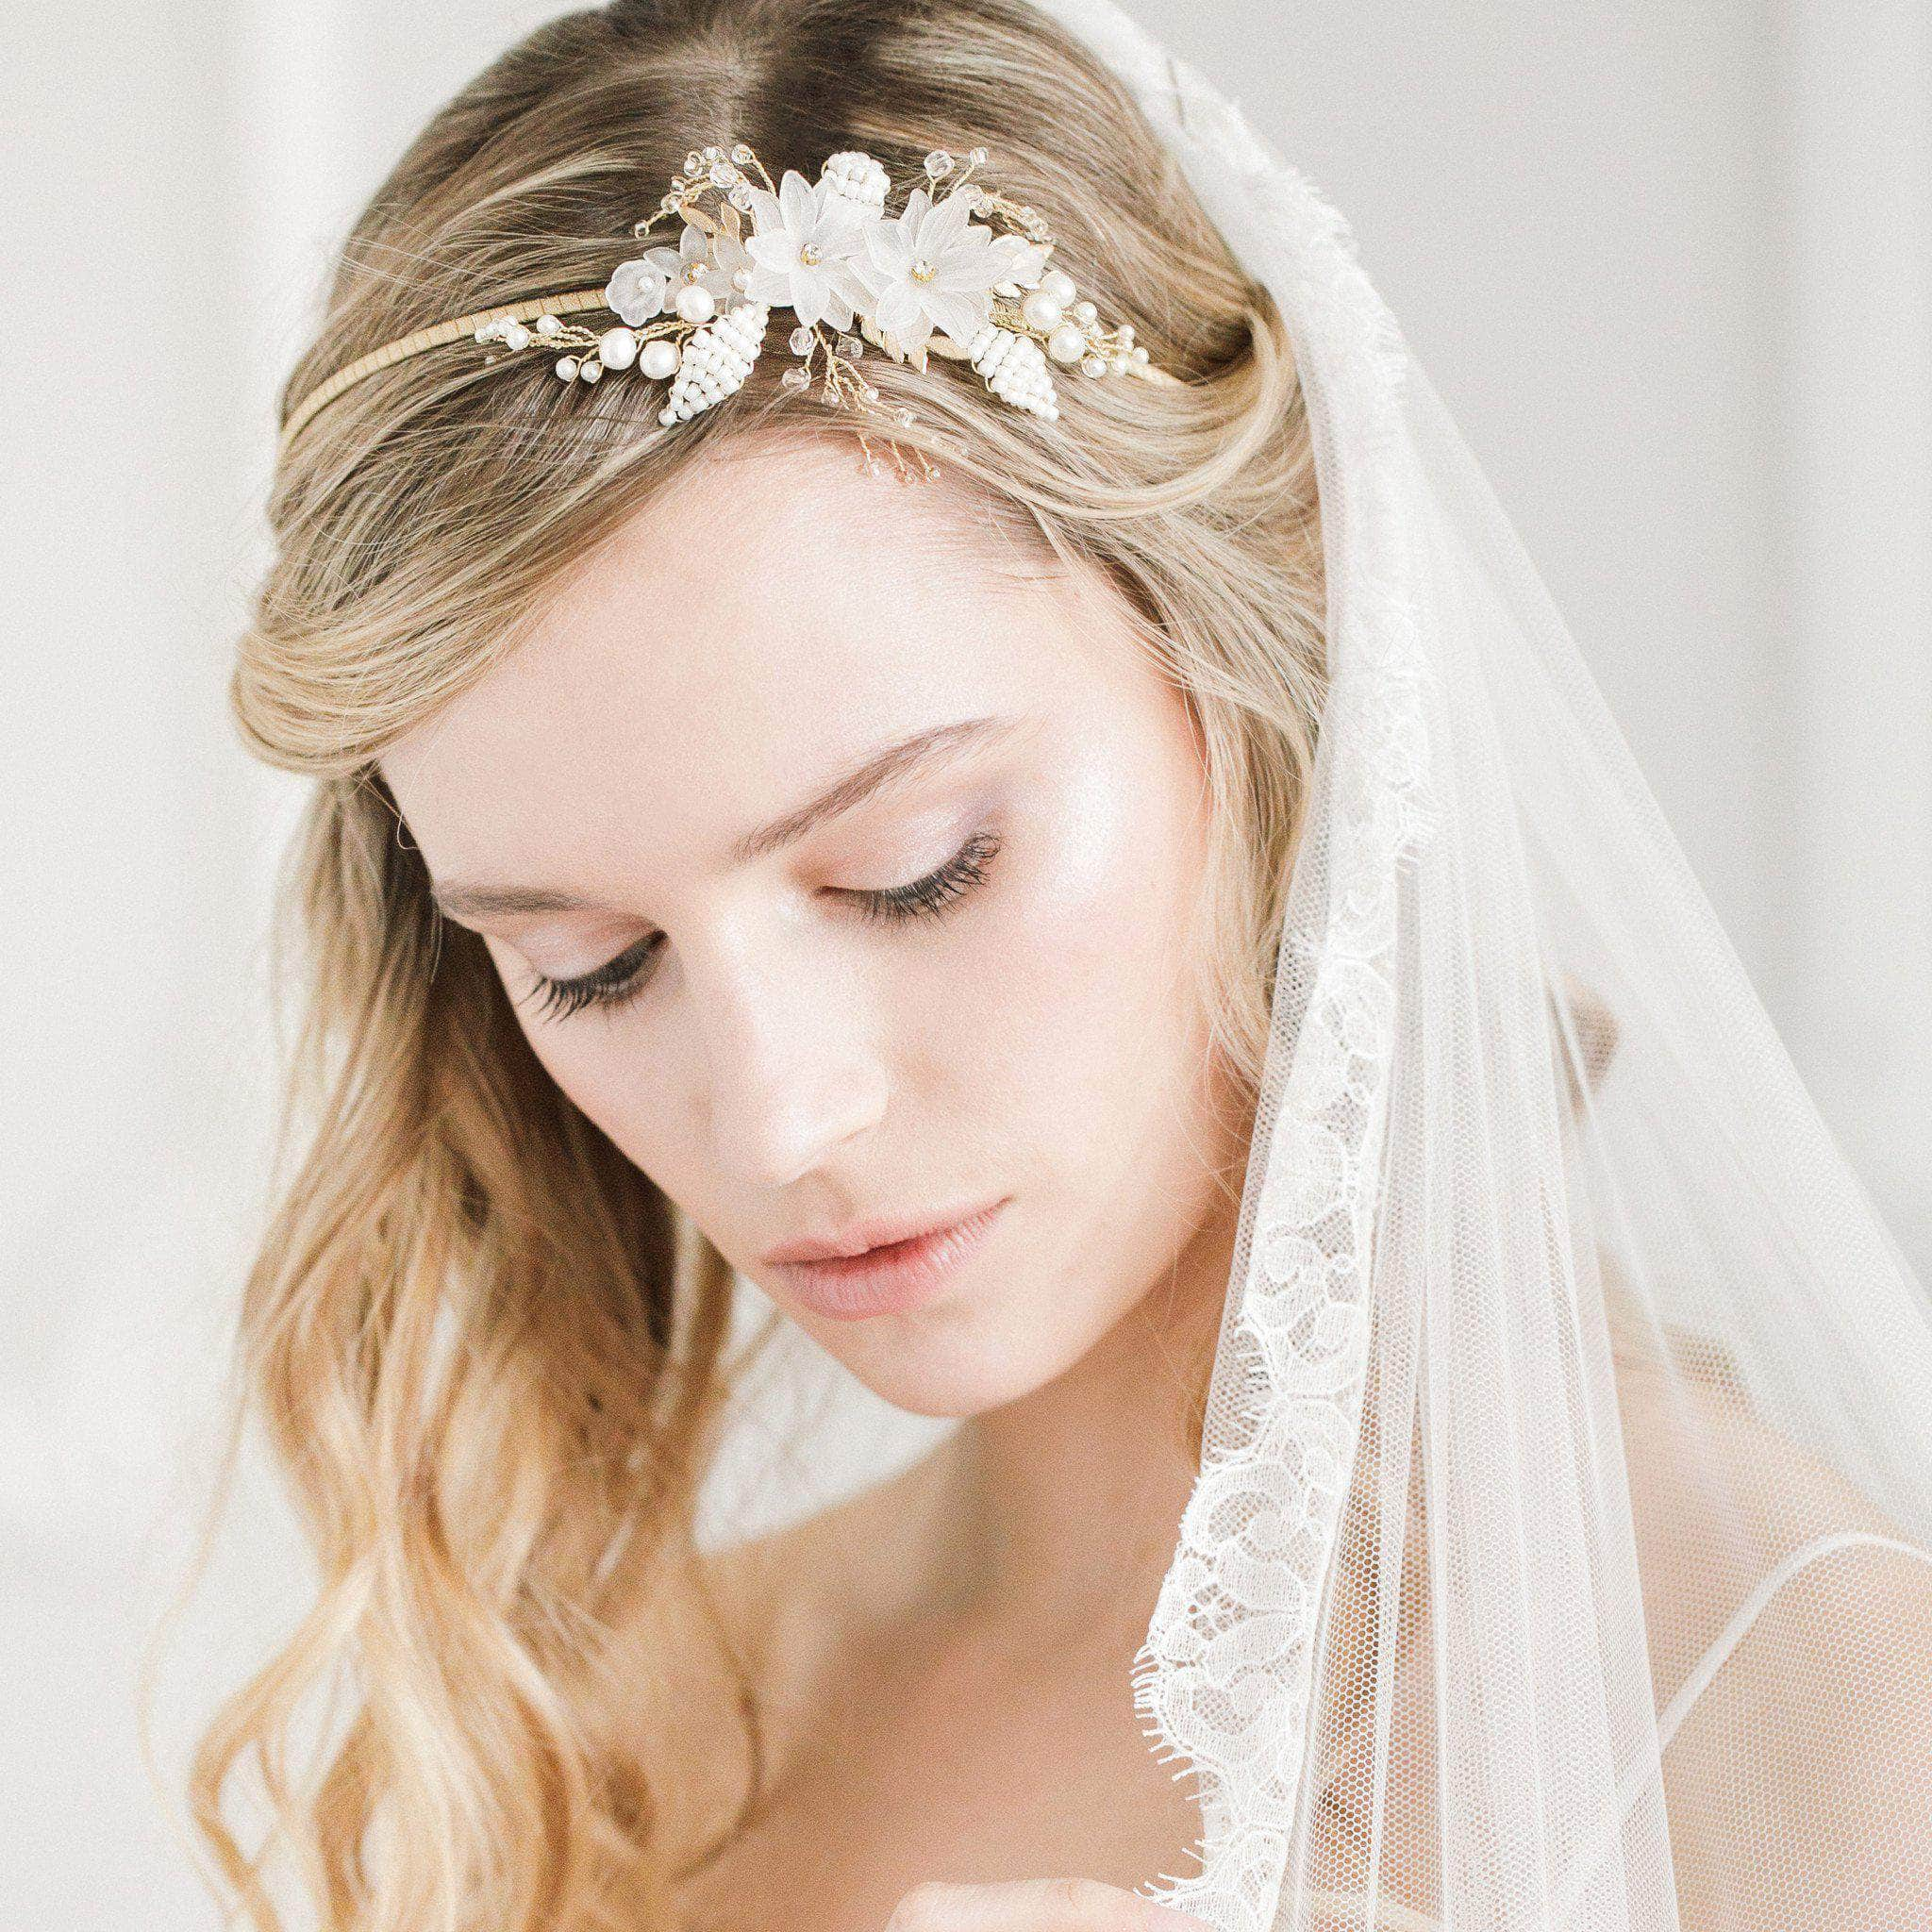 Wedding Hairstyle With Headband: Flower And Leaf Botanical Wedding Headband 'Rani